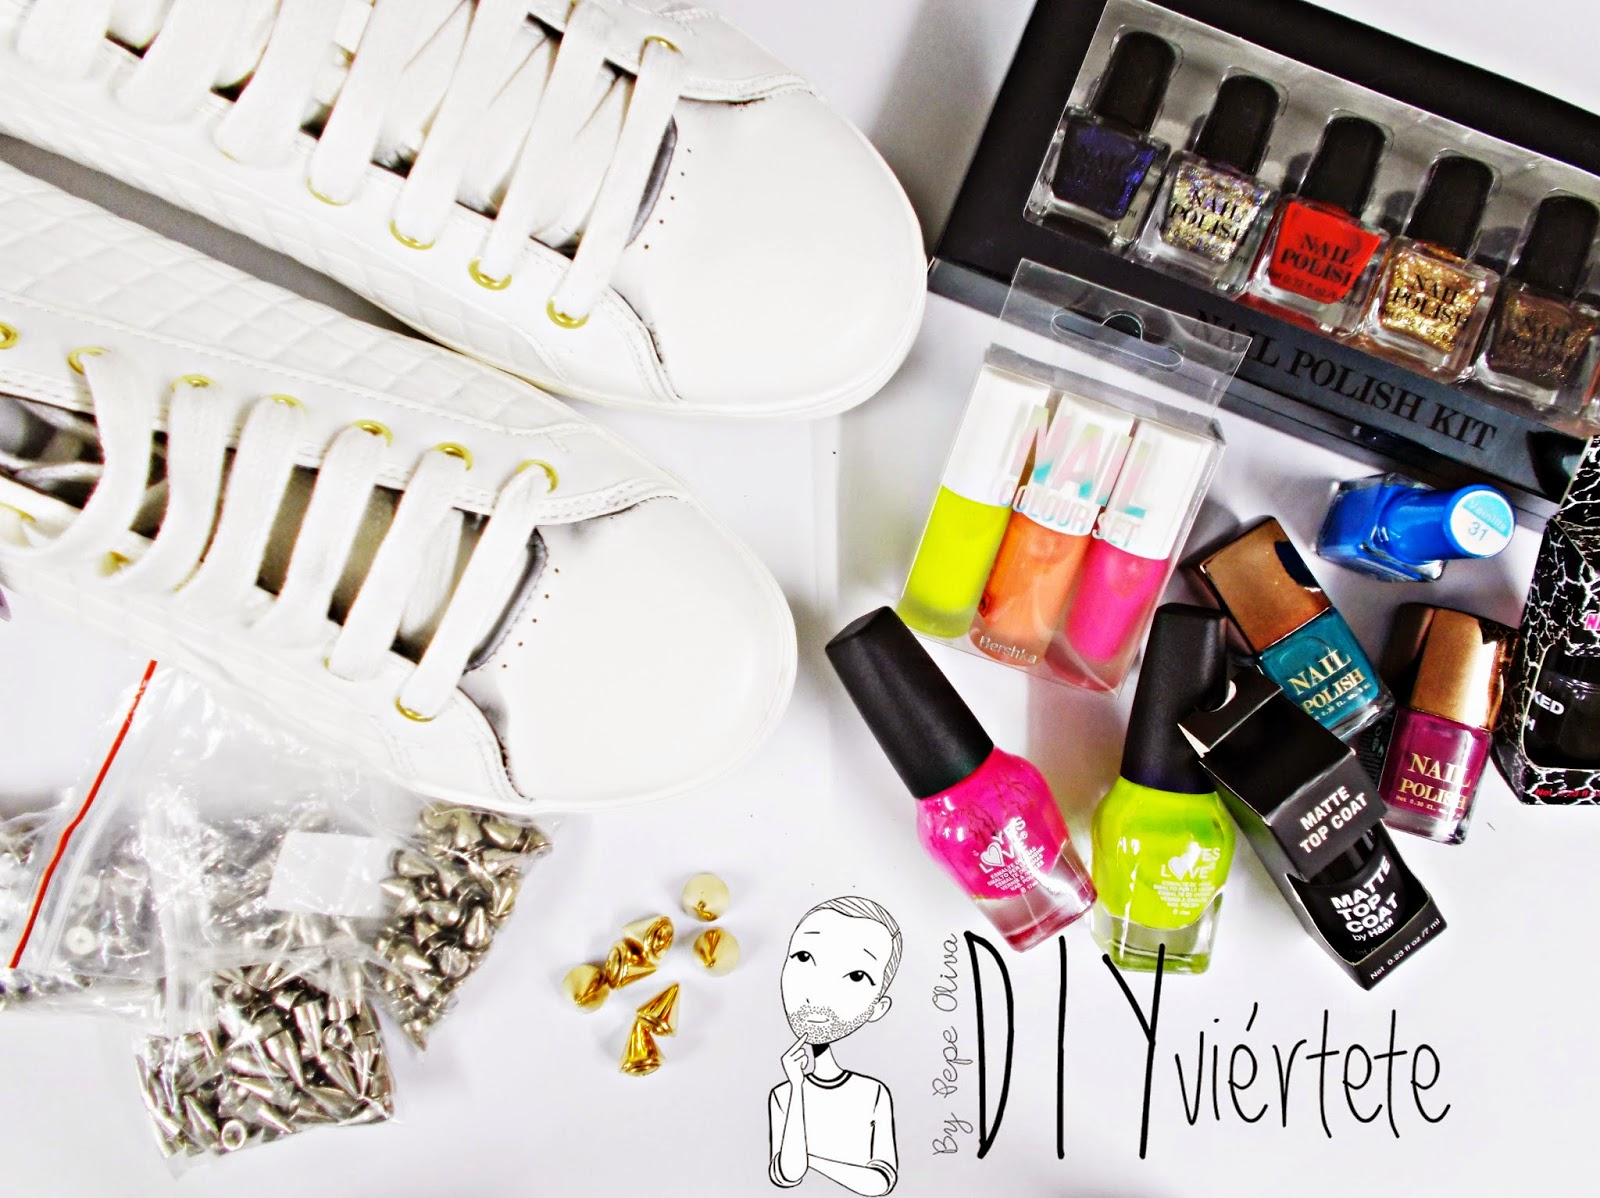 DIY-zapatillas-tunear-customizar-CHRISTIAN-LOUBOUTIN-zapatos-pinchos-esmaltes-pinta uñas-colores-4